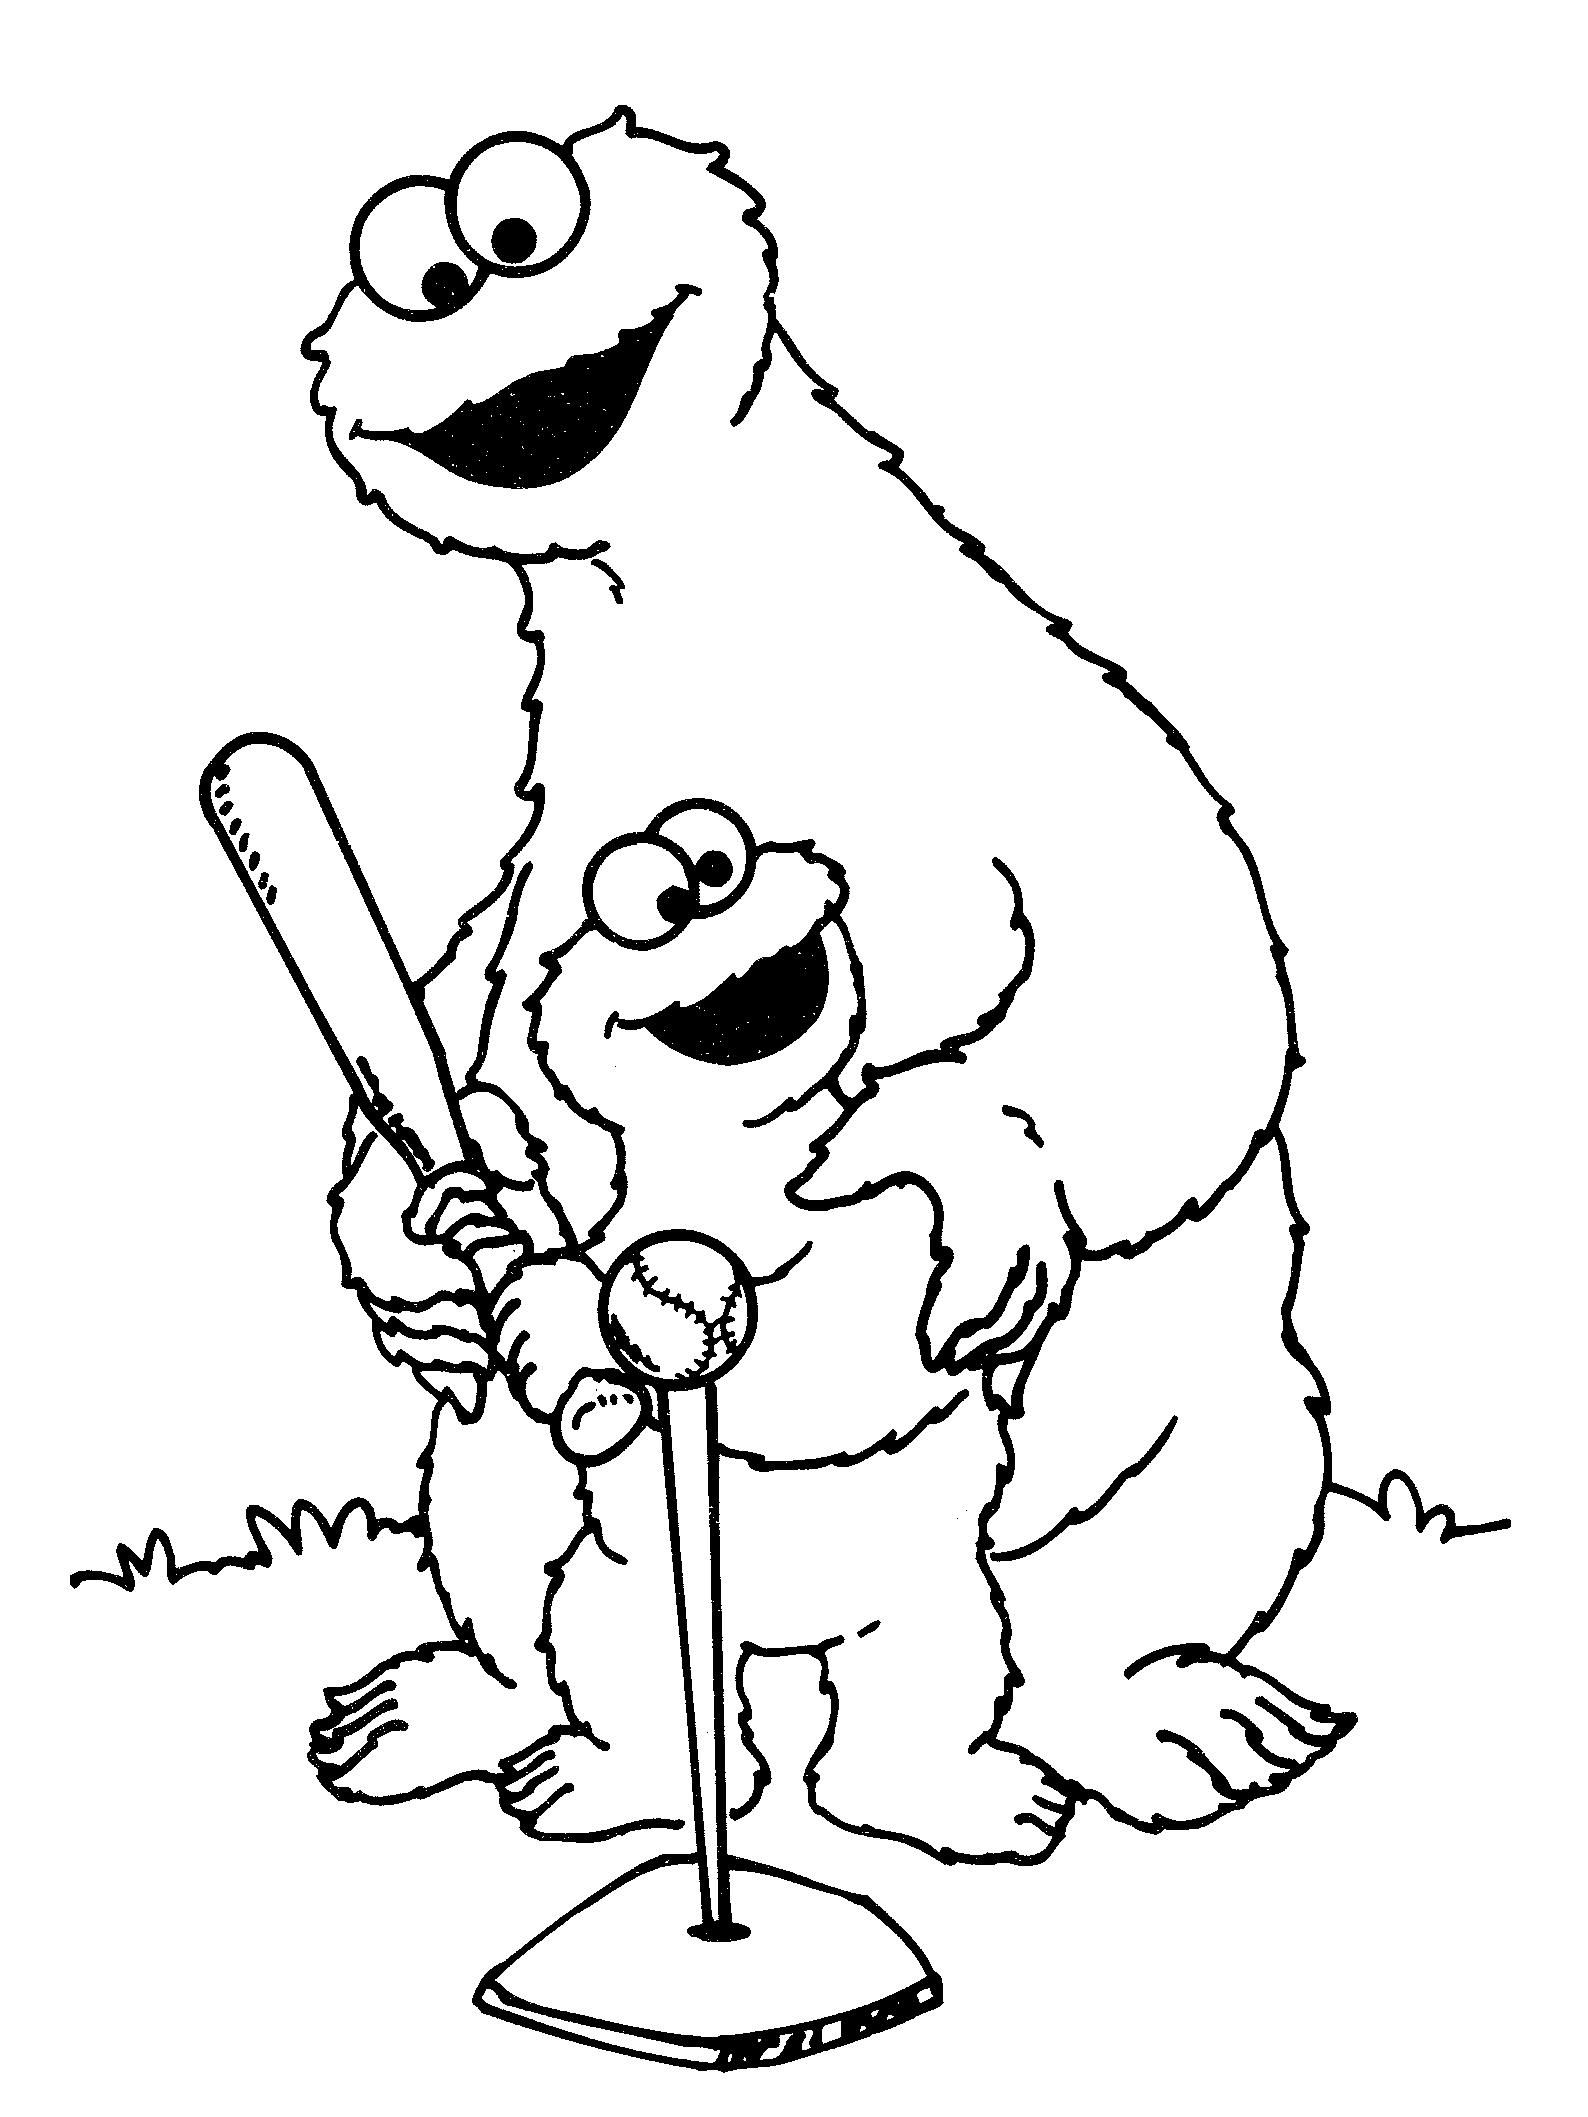 T ball coloring pages - Cookie Monster Tee Ball Coloring Pages